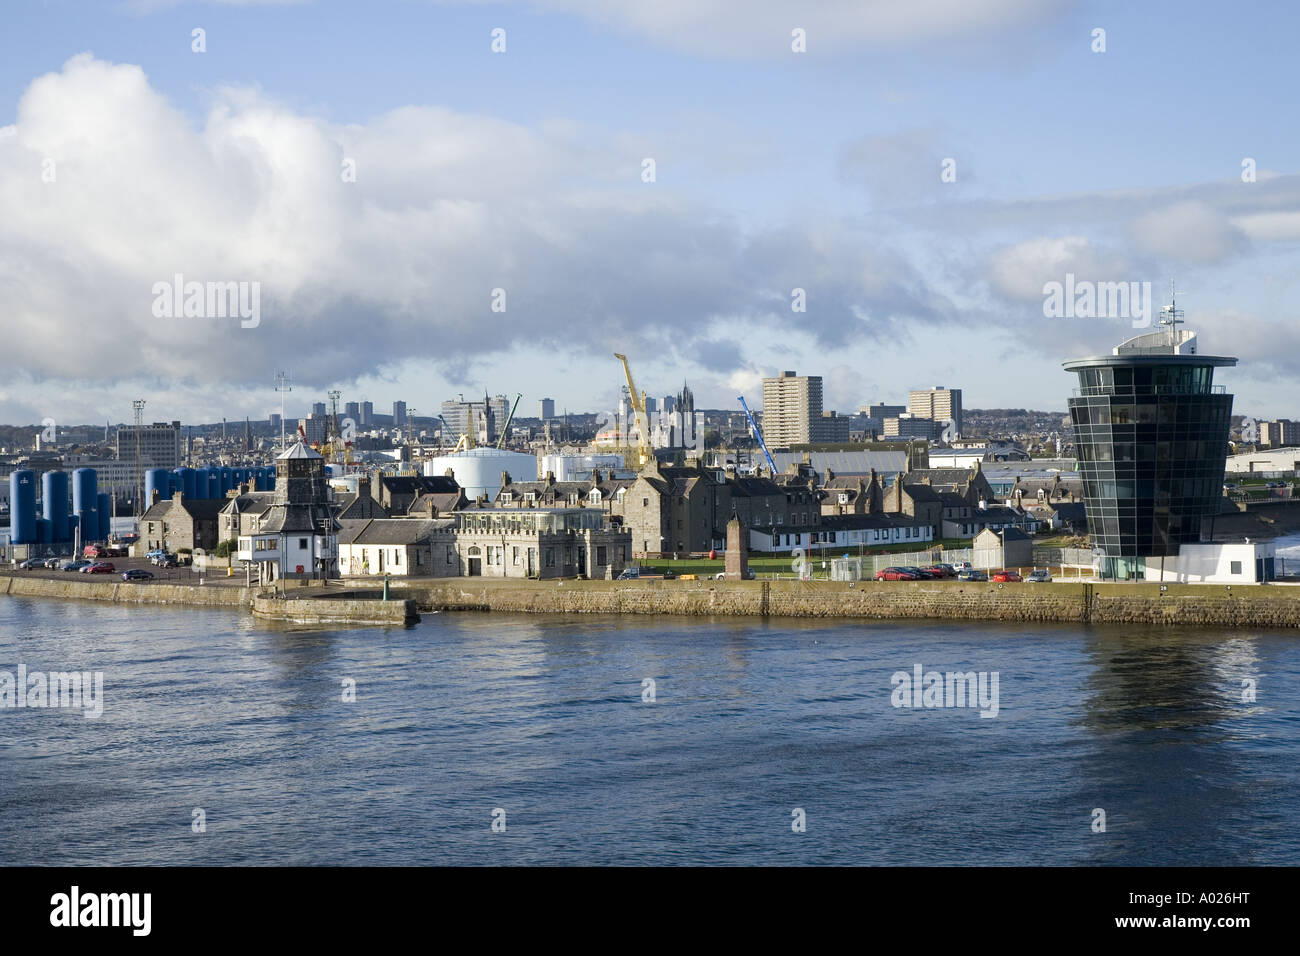 Aberdeen city harbour facilities _ Port in the North-east of Scotland.  Aberdeenshire Scotland uk - Stock Image